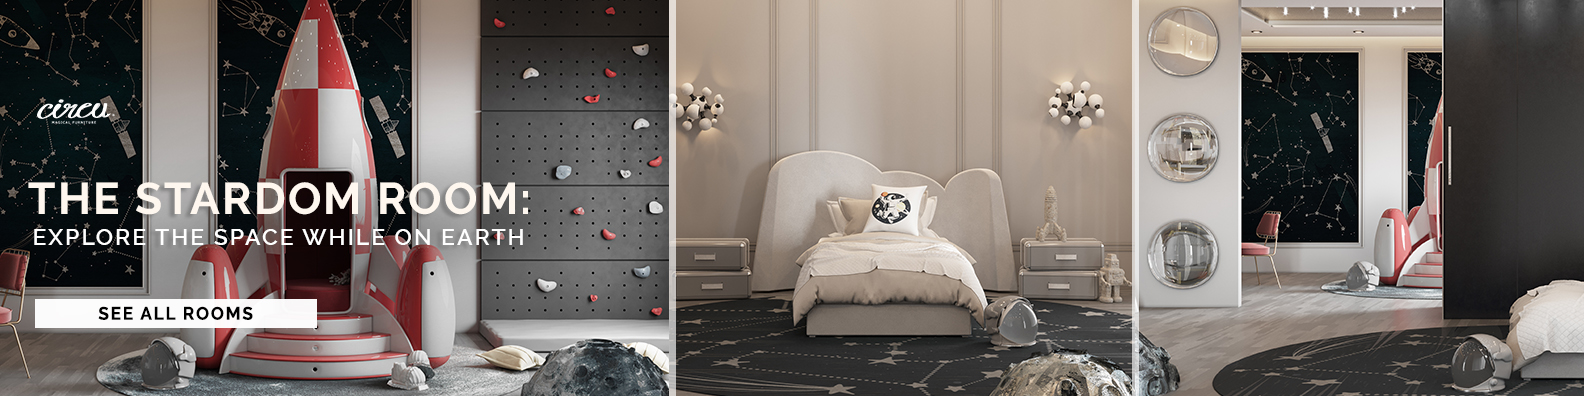 Luxury kids study area with a space theme decor  Kids Bedroom Ideas – A High-End Kids Study with Starry Vibes 1584x396 3